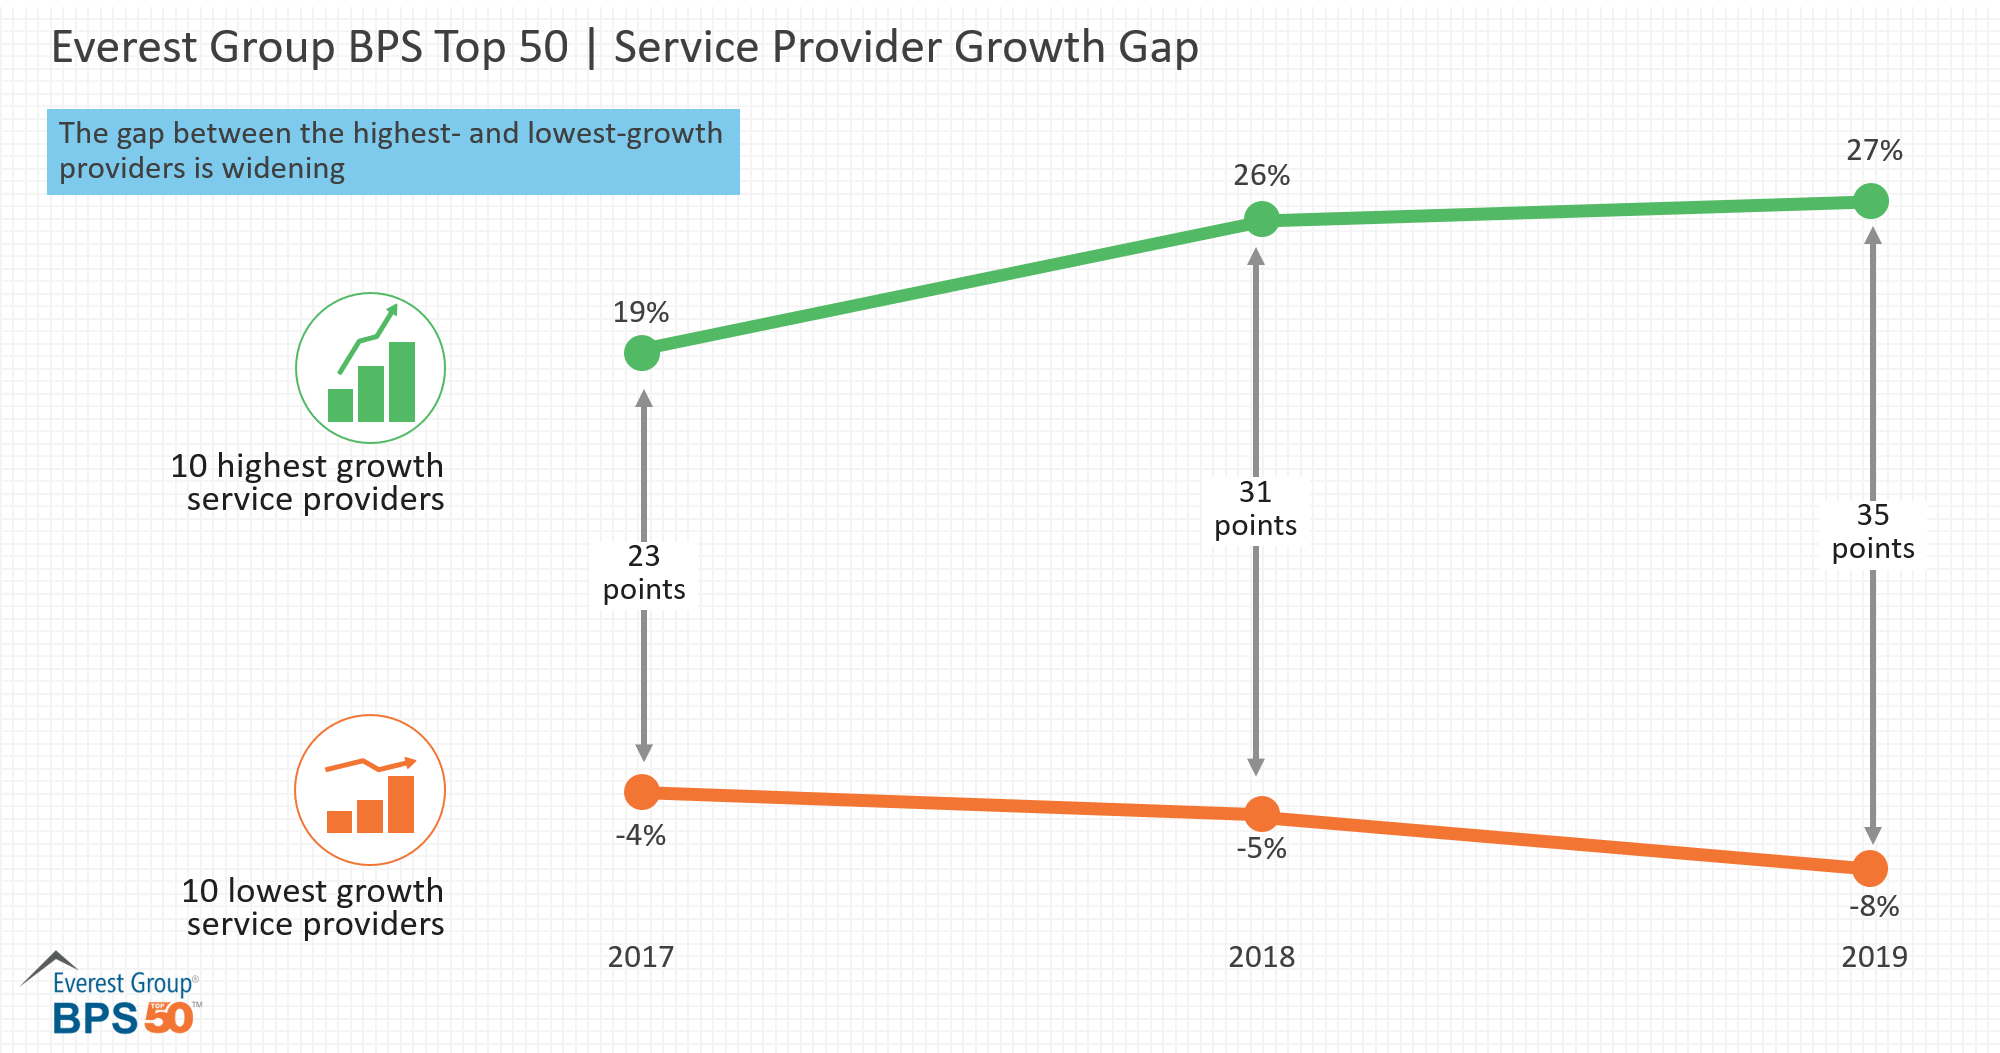 Everest Group BPS Top 50 - Service Provider Growth Gap